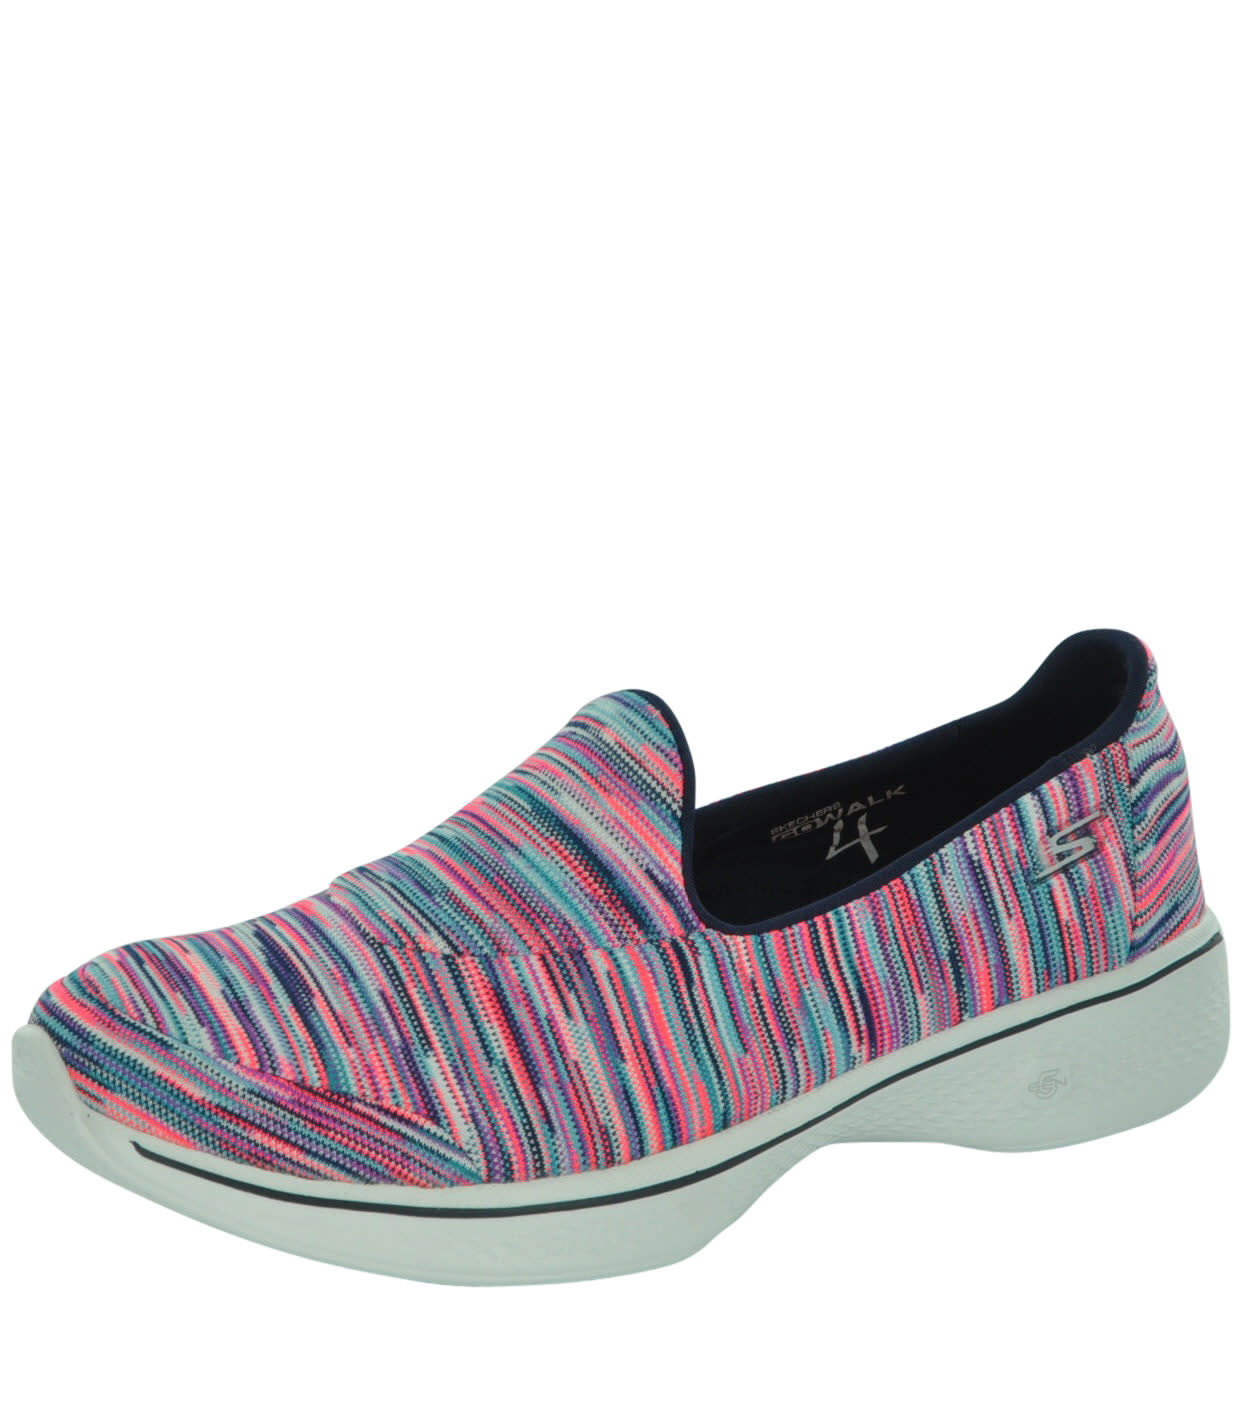 skechers shoes images